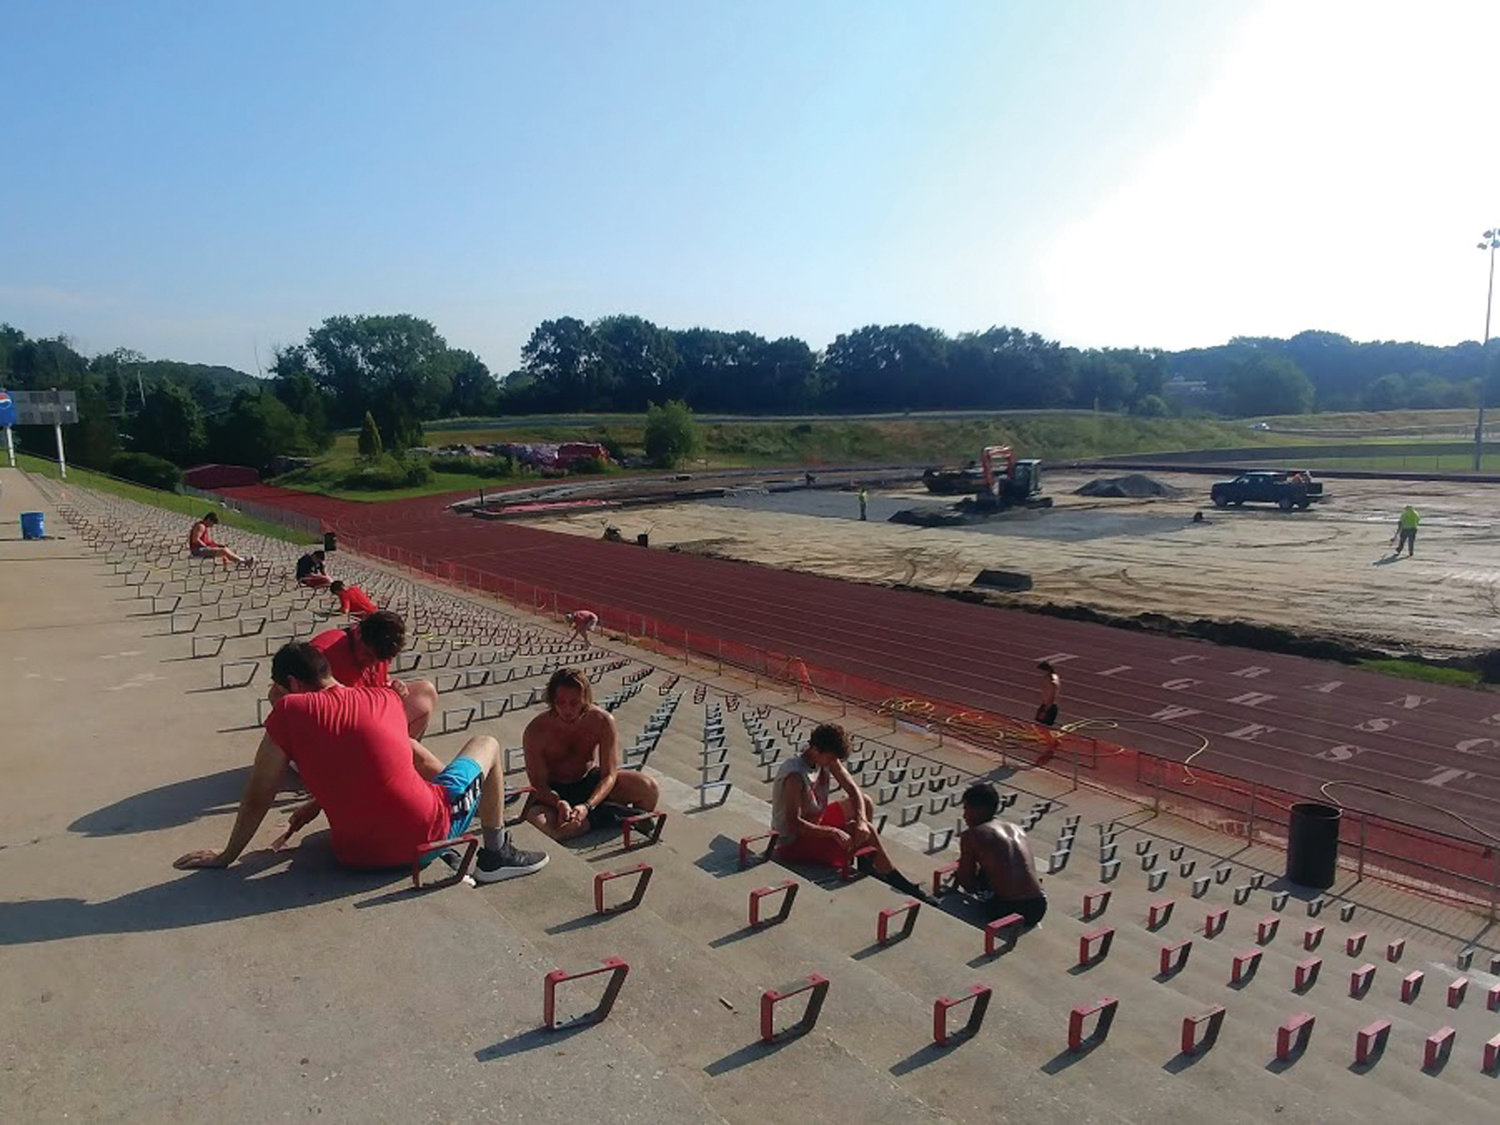 HARD AT WORK: Despite the near-100 degree heat and early morning hours, members of the Cranston High School West football team were hard at work on the cement stairs in the bleacher area of the school's renovated athletic complex in this August photo.